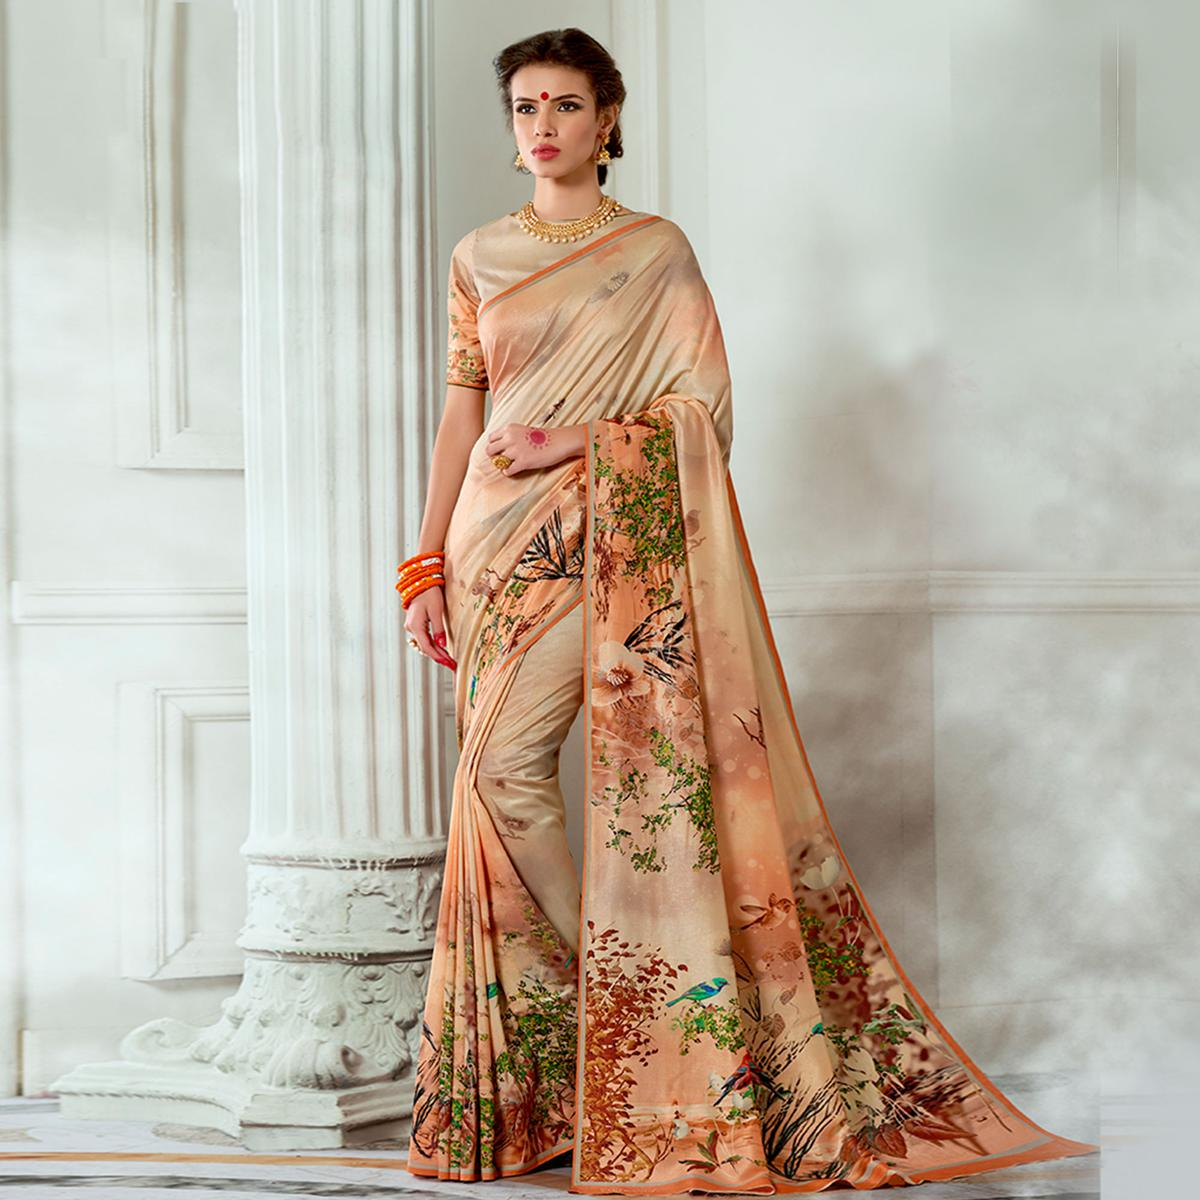 Dazzling Beige Colored Casual Wear Digital Printed Tussar Silk Saree